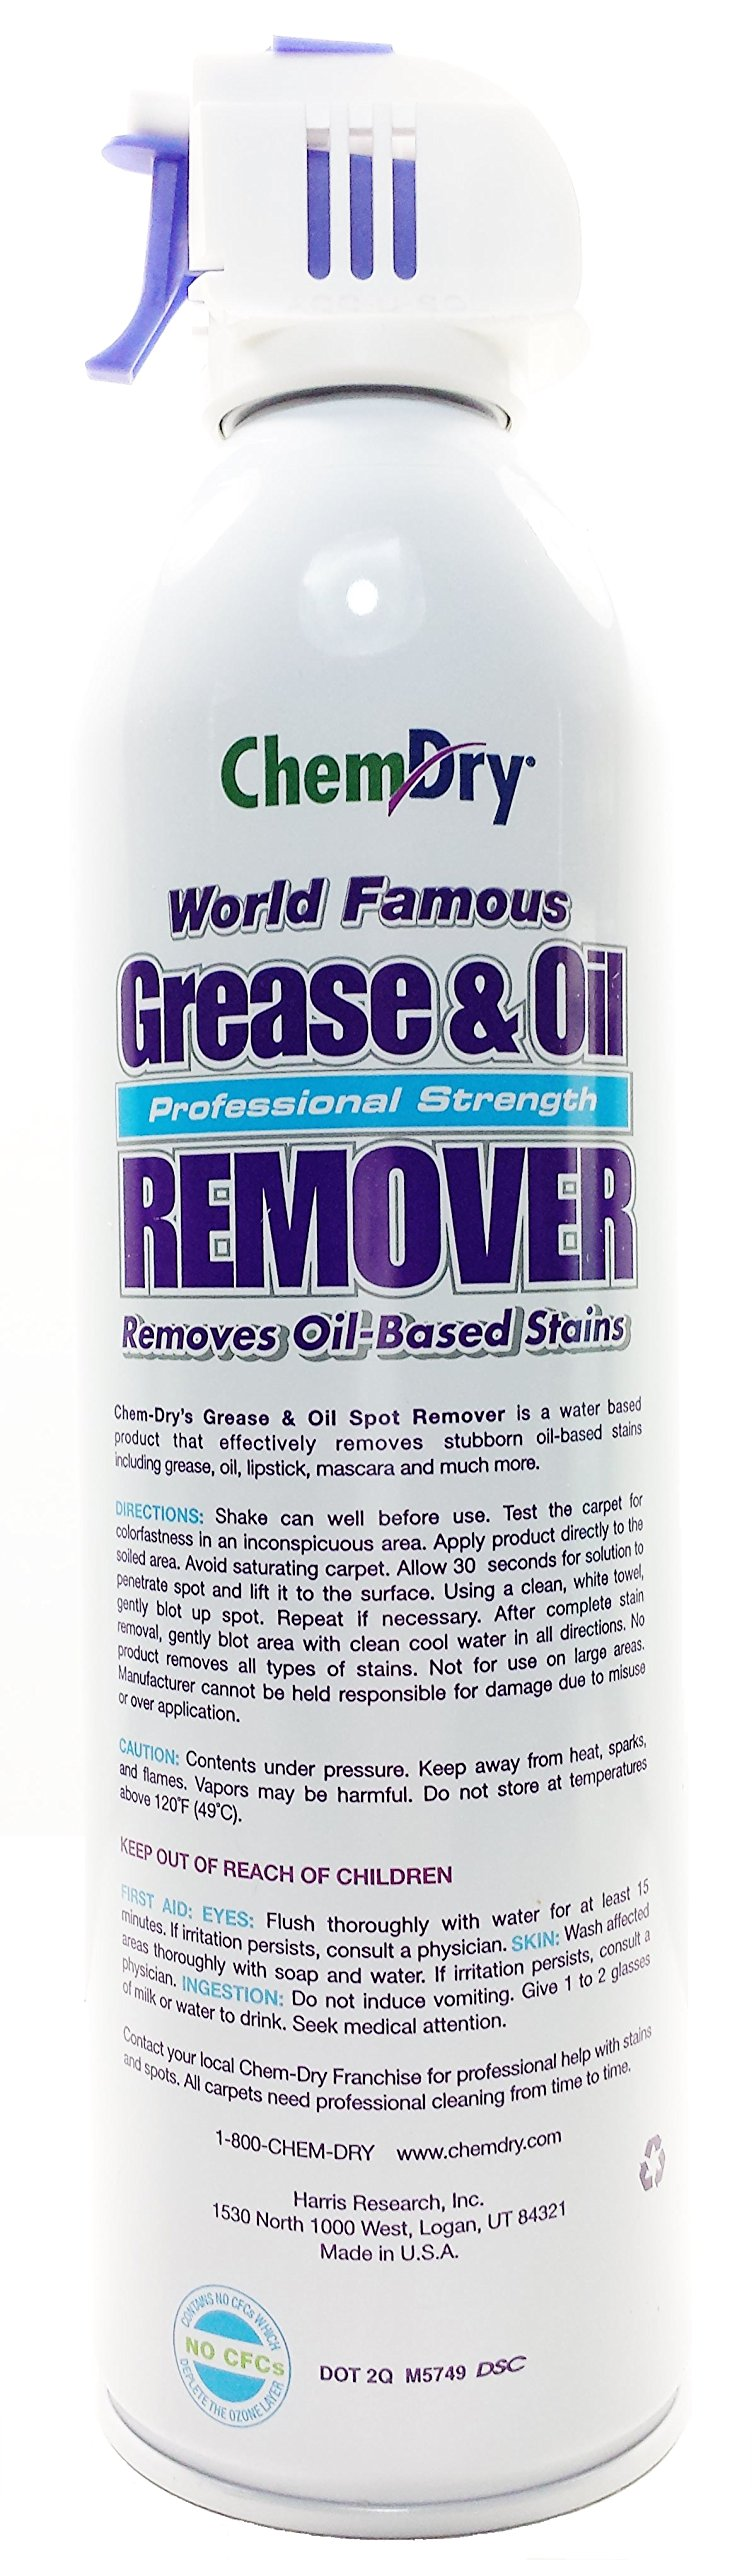 Chem-Dry Professional Strength Grease & Oil Remover 18 oz